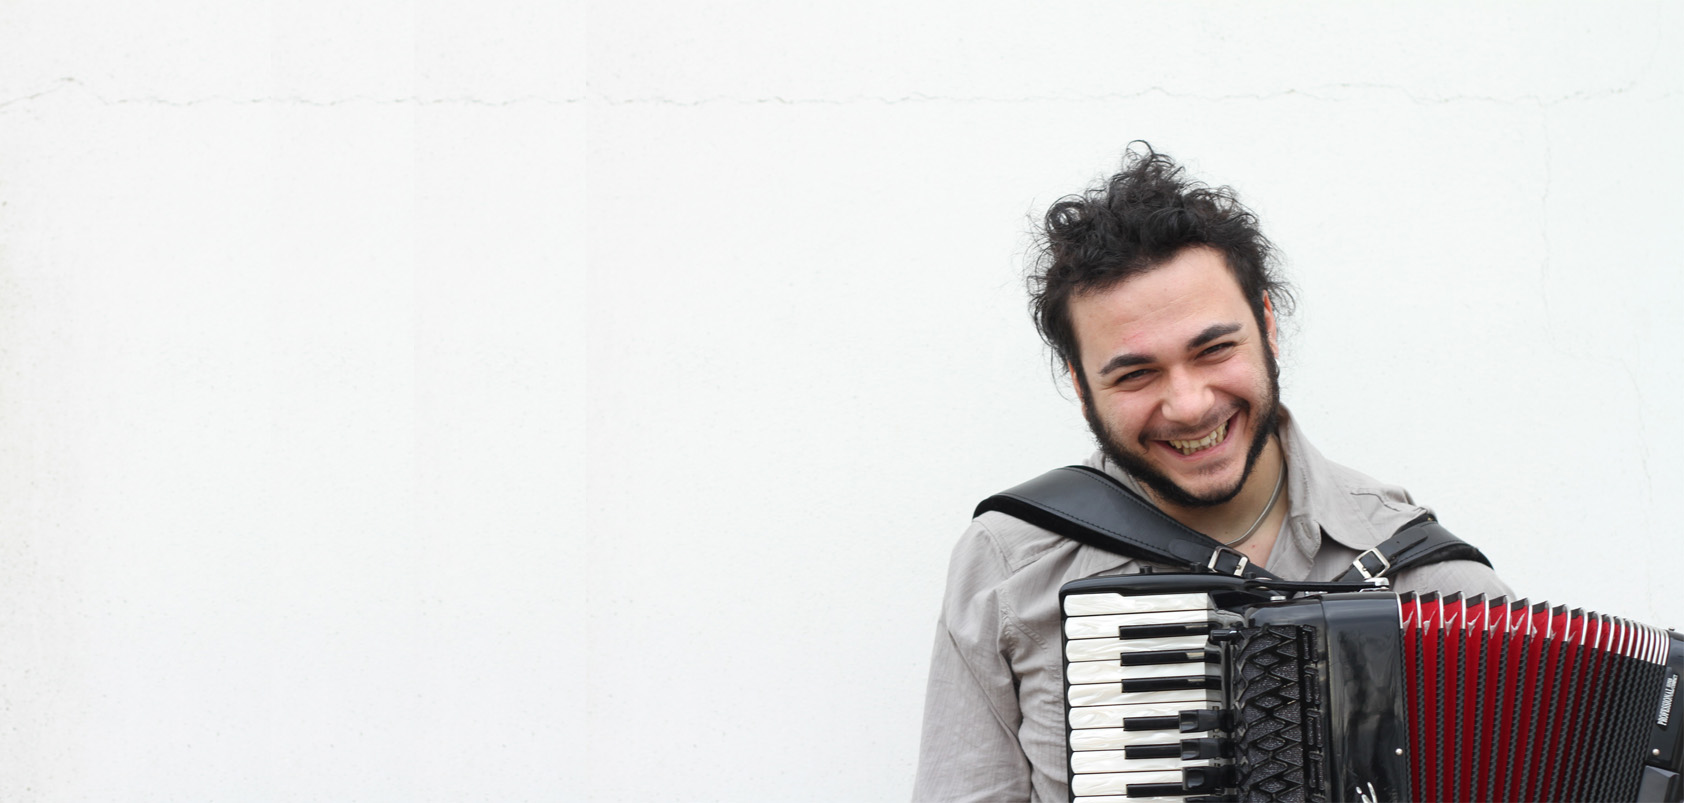 Giorgio Albanese | Jazz Accordion Player & Composer | Fisarmonicista